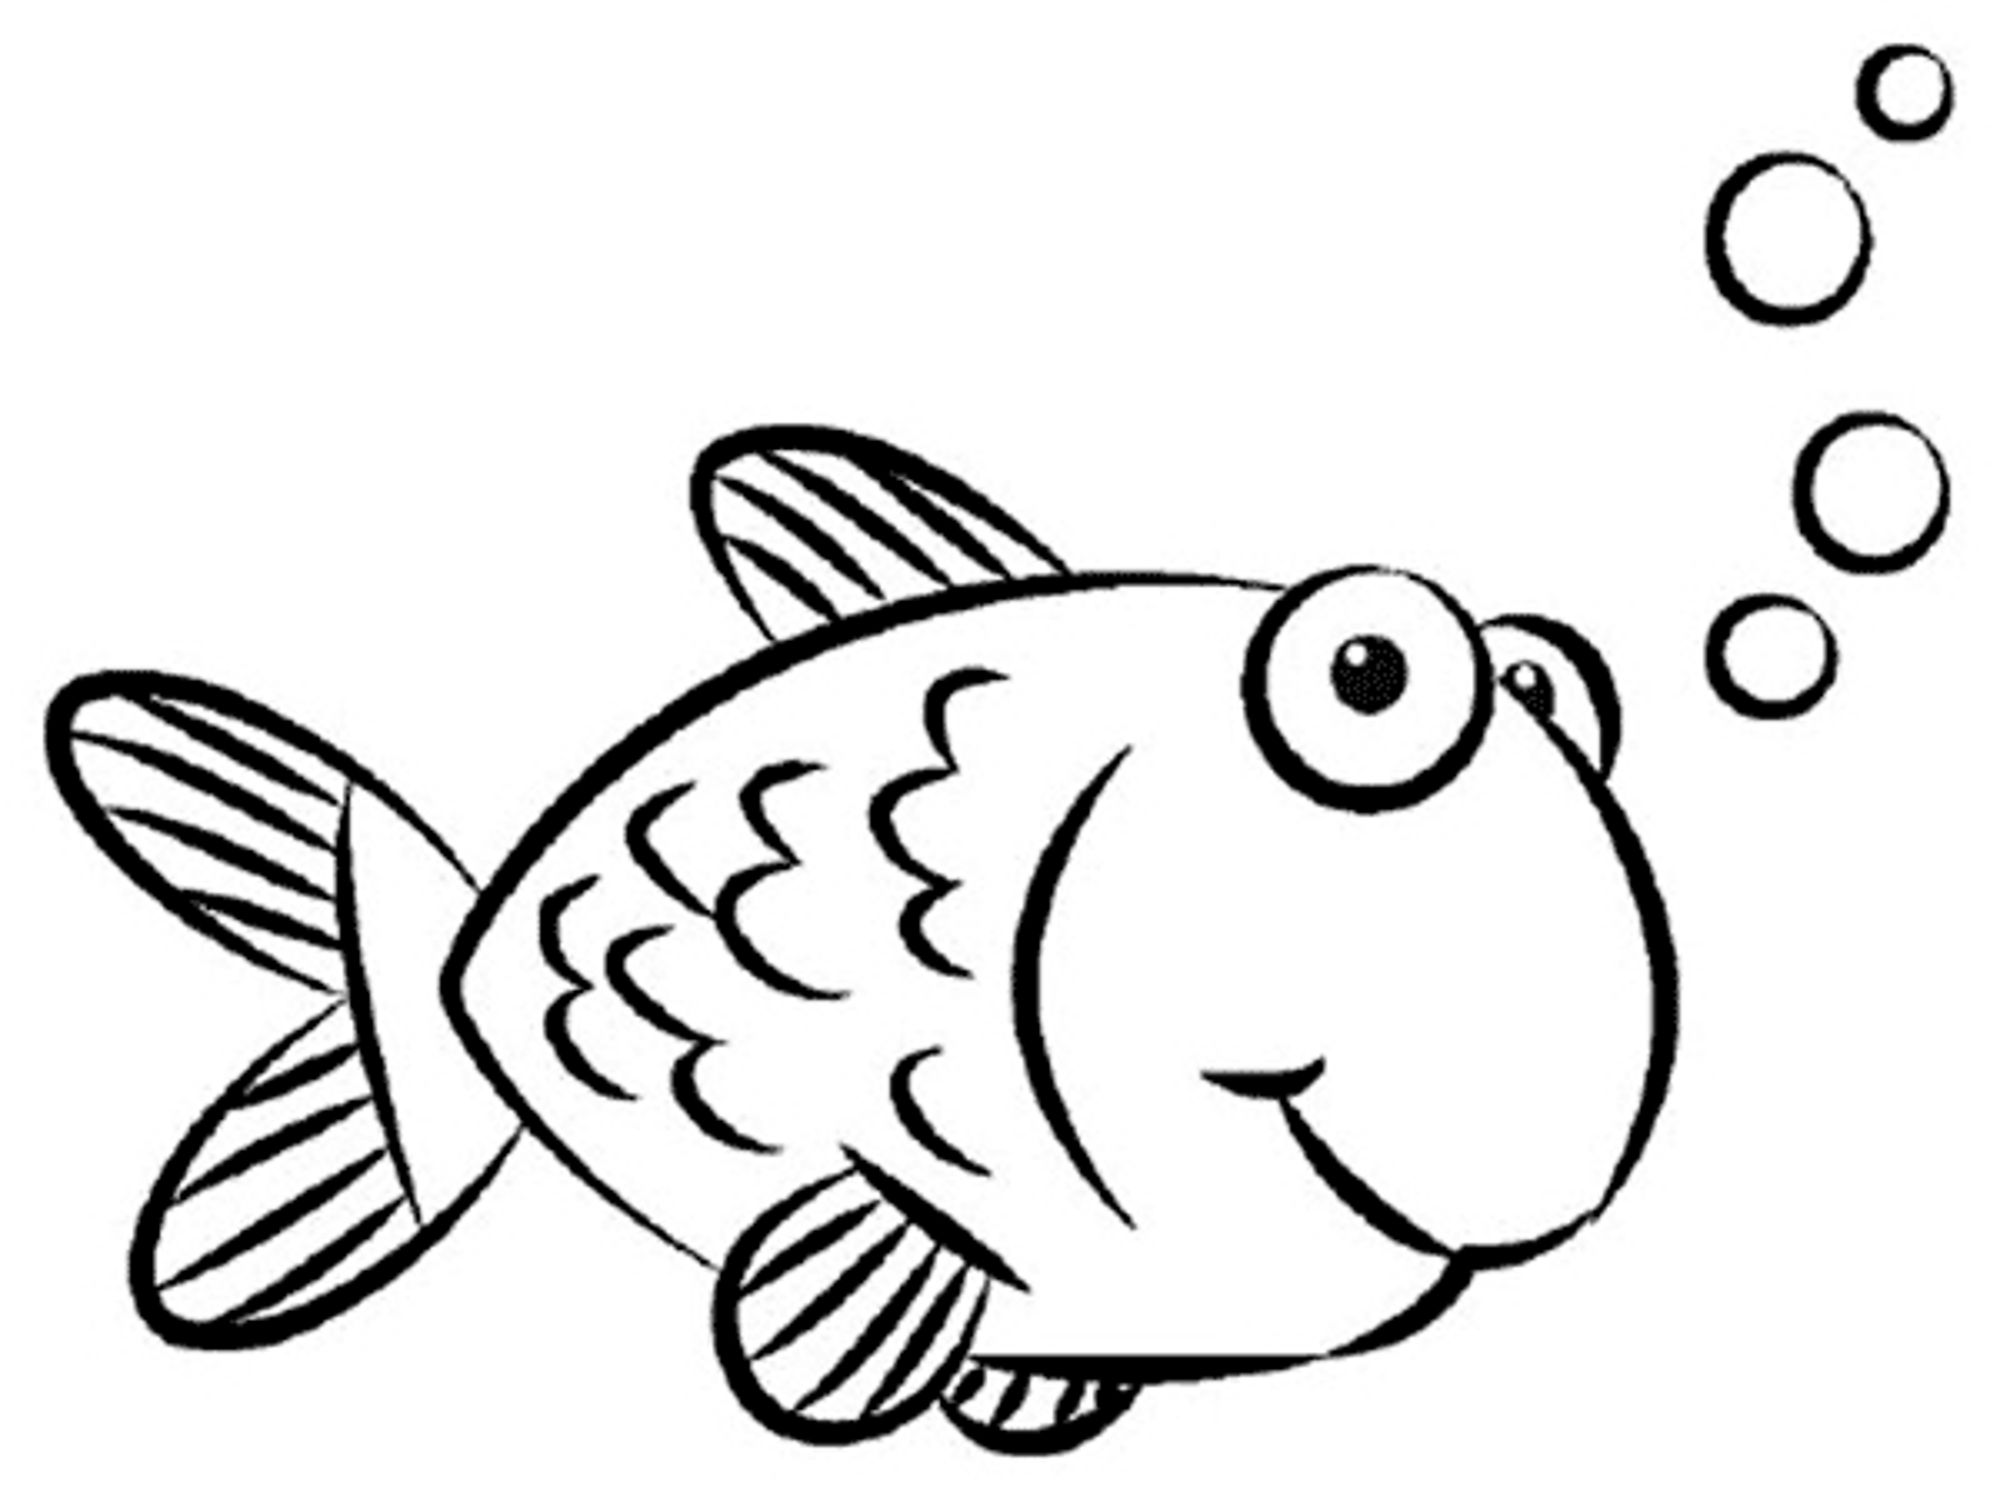 fish coloring pages for kids - photo#22